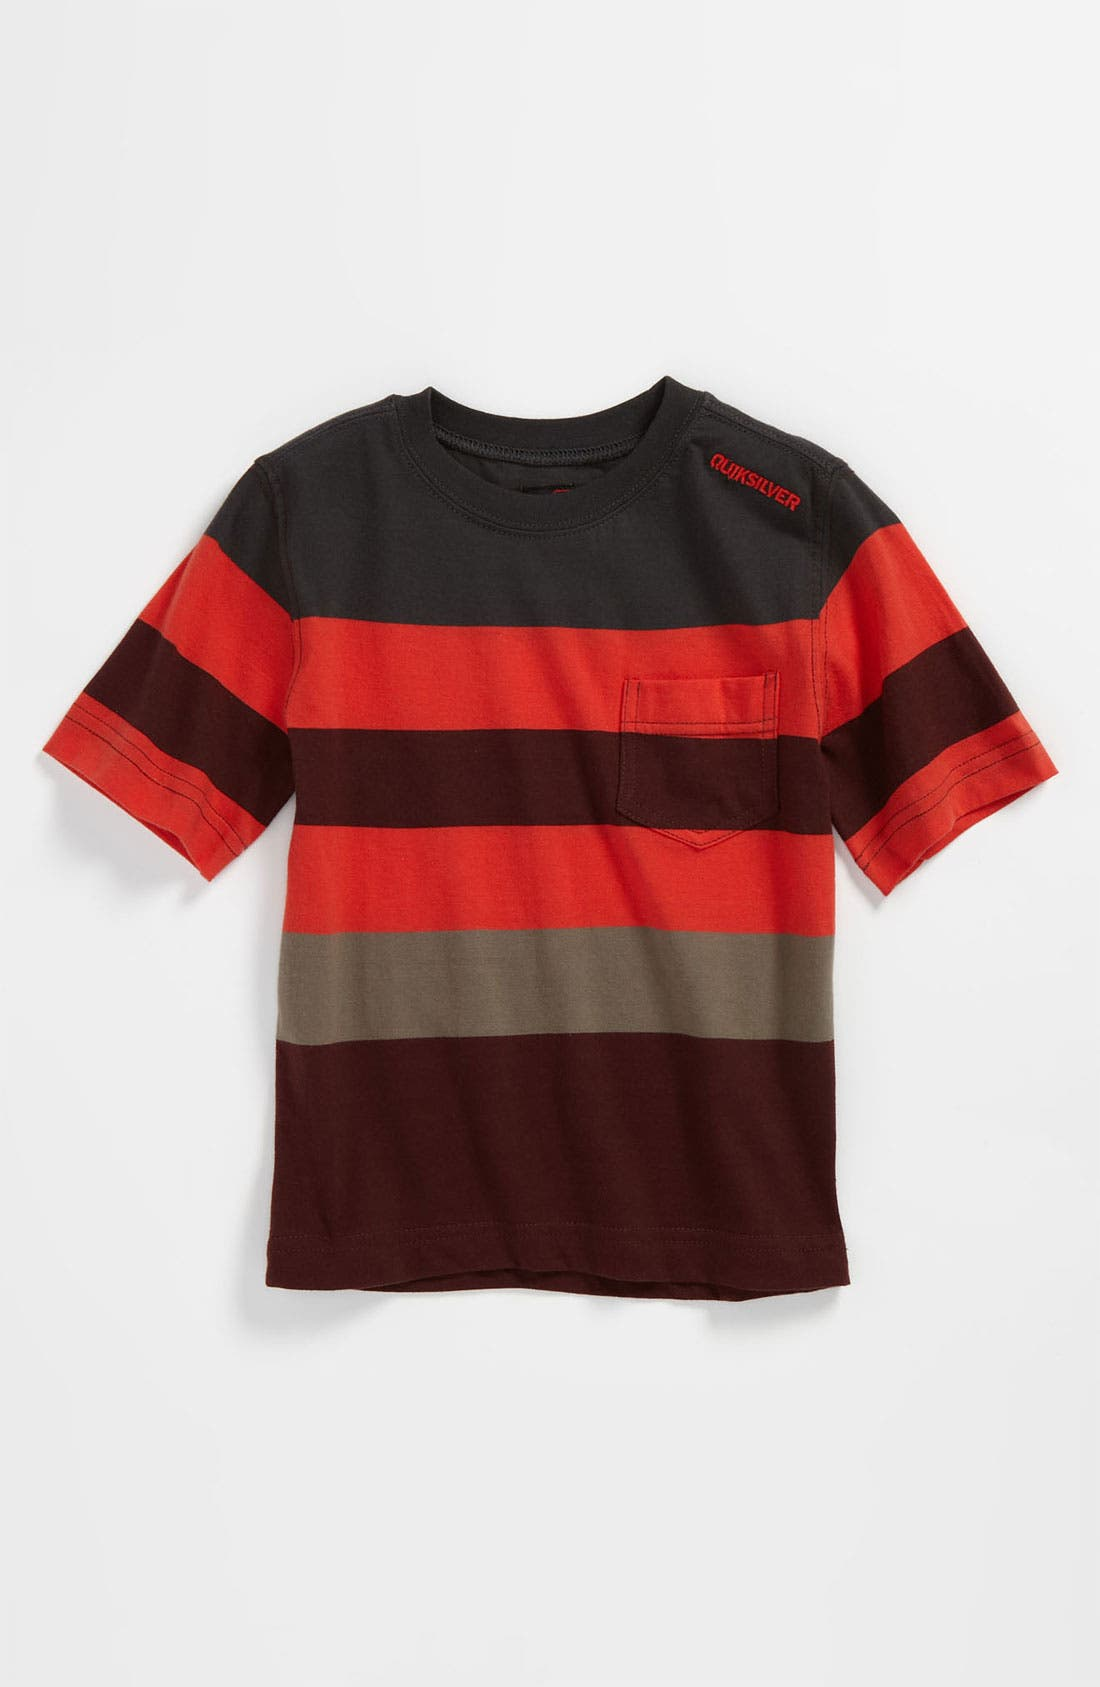 Alternate Image 1 Selected - Quiksilver 'Mobley' Stripe T-Shirt (Infant)